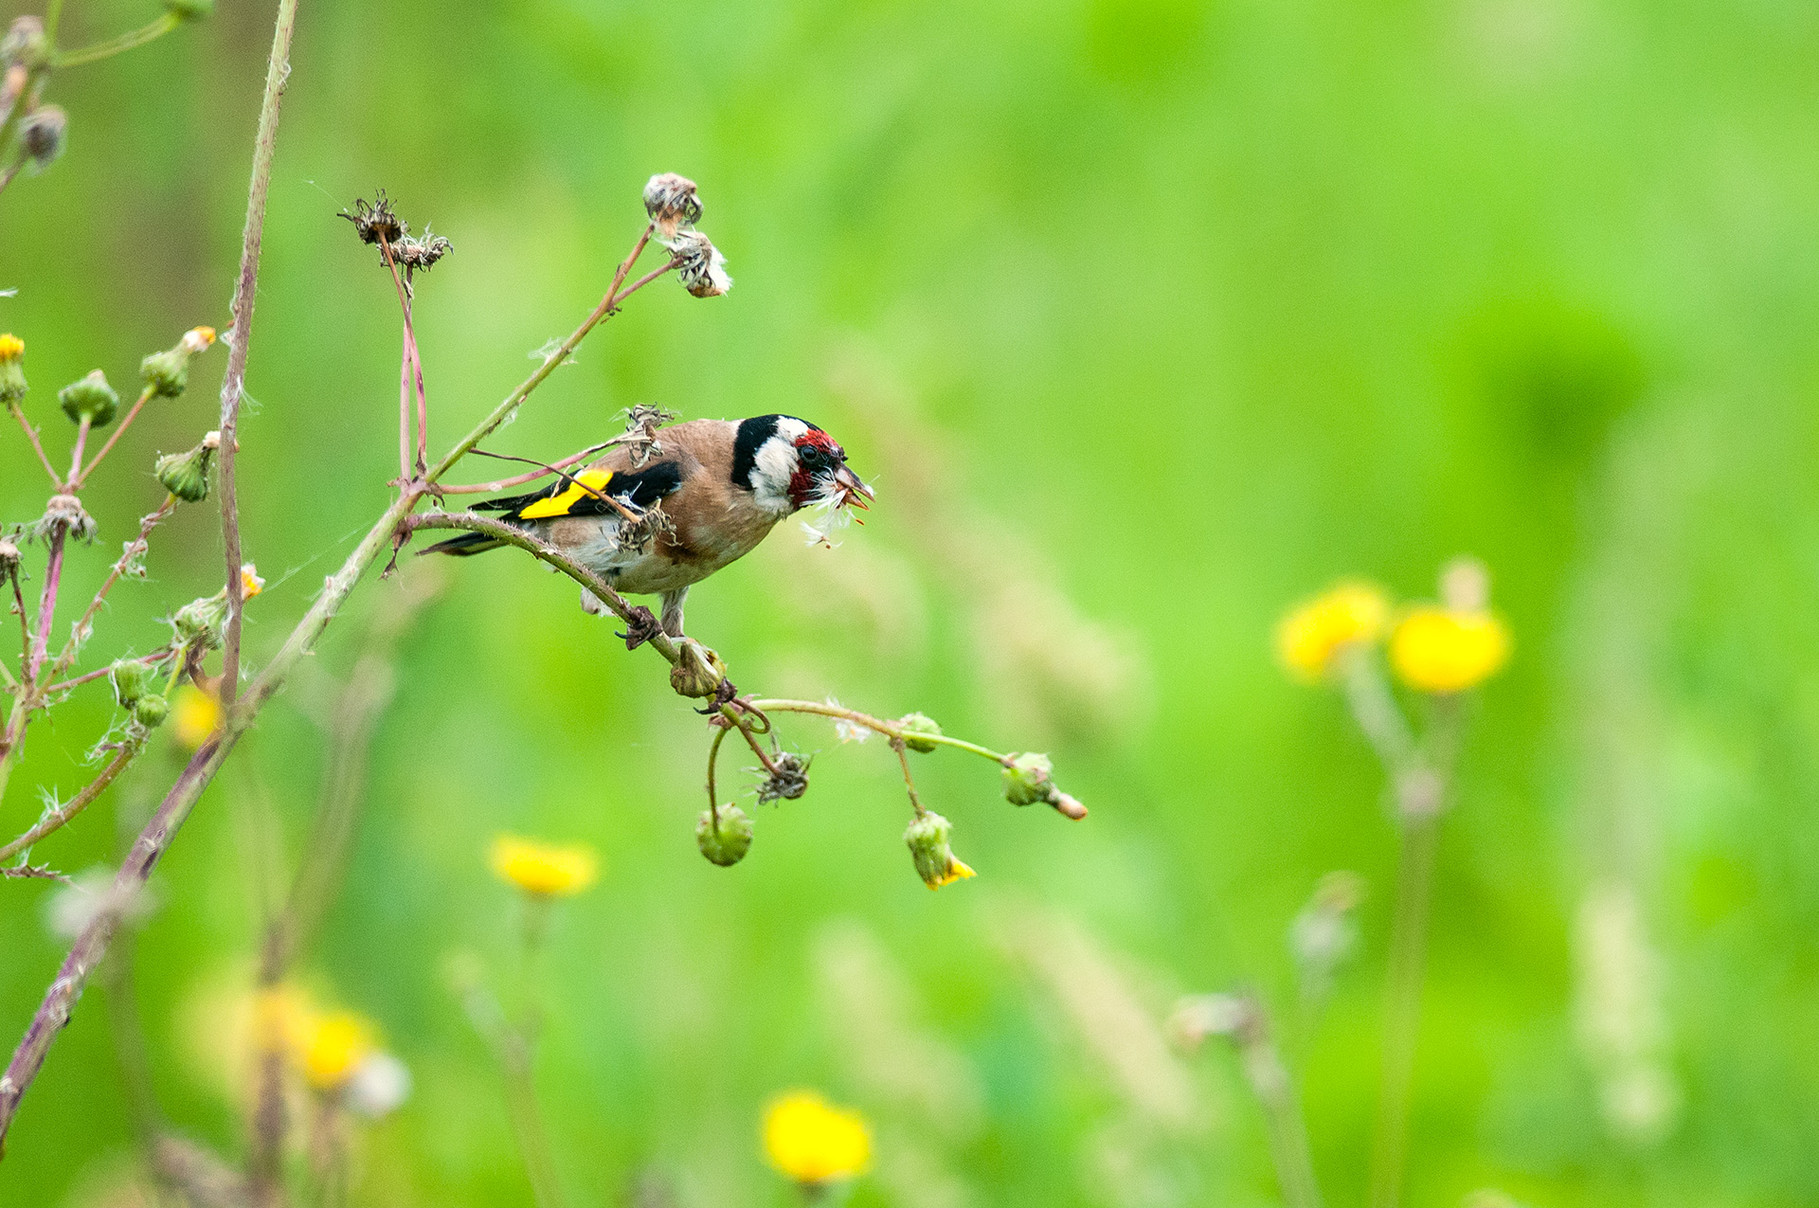 Cardellino - European Goldfinch